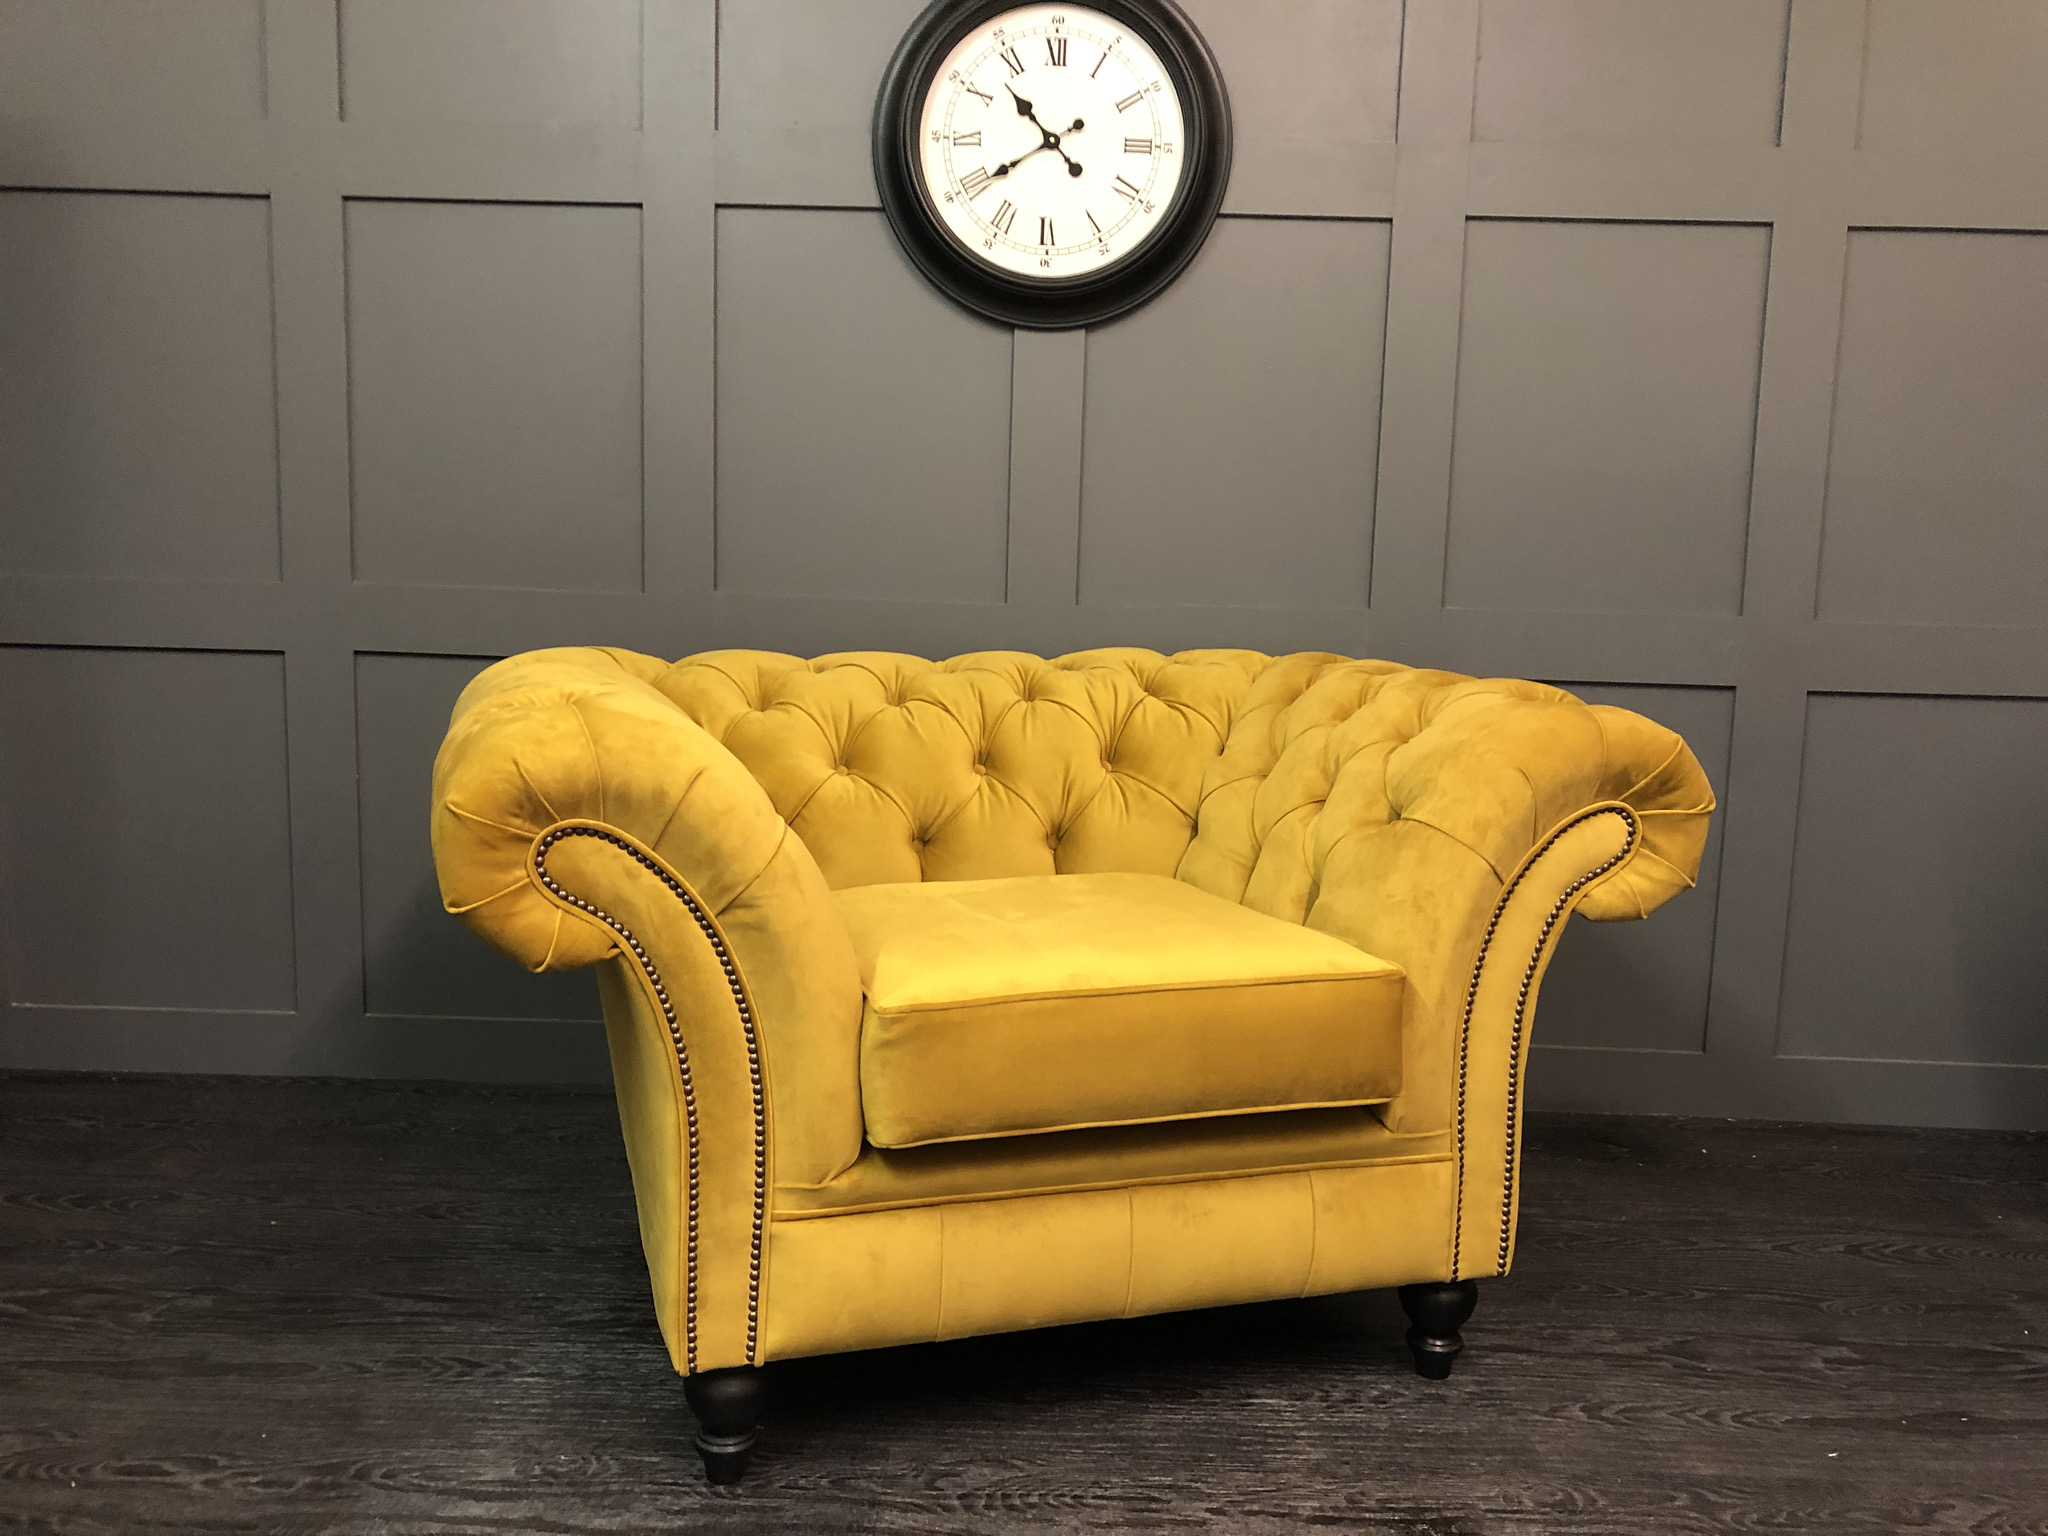 London Chair warwick Turmeric plush velvet